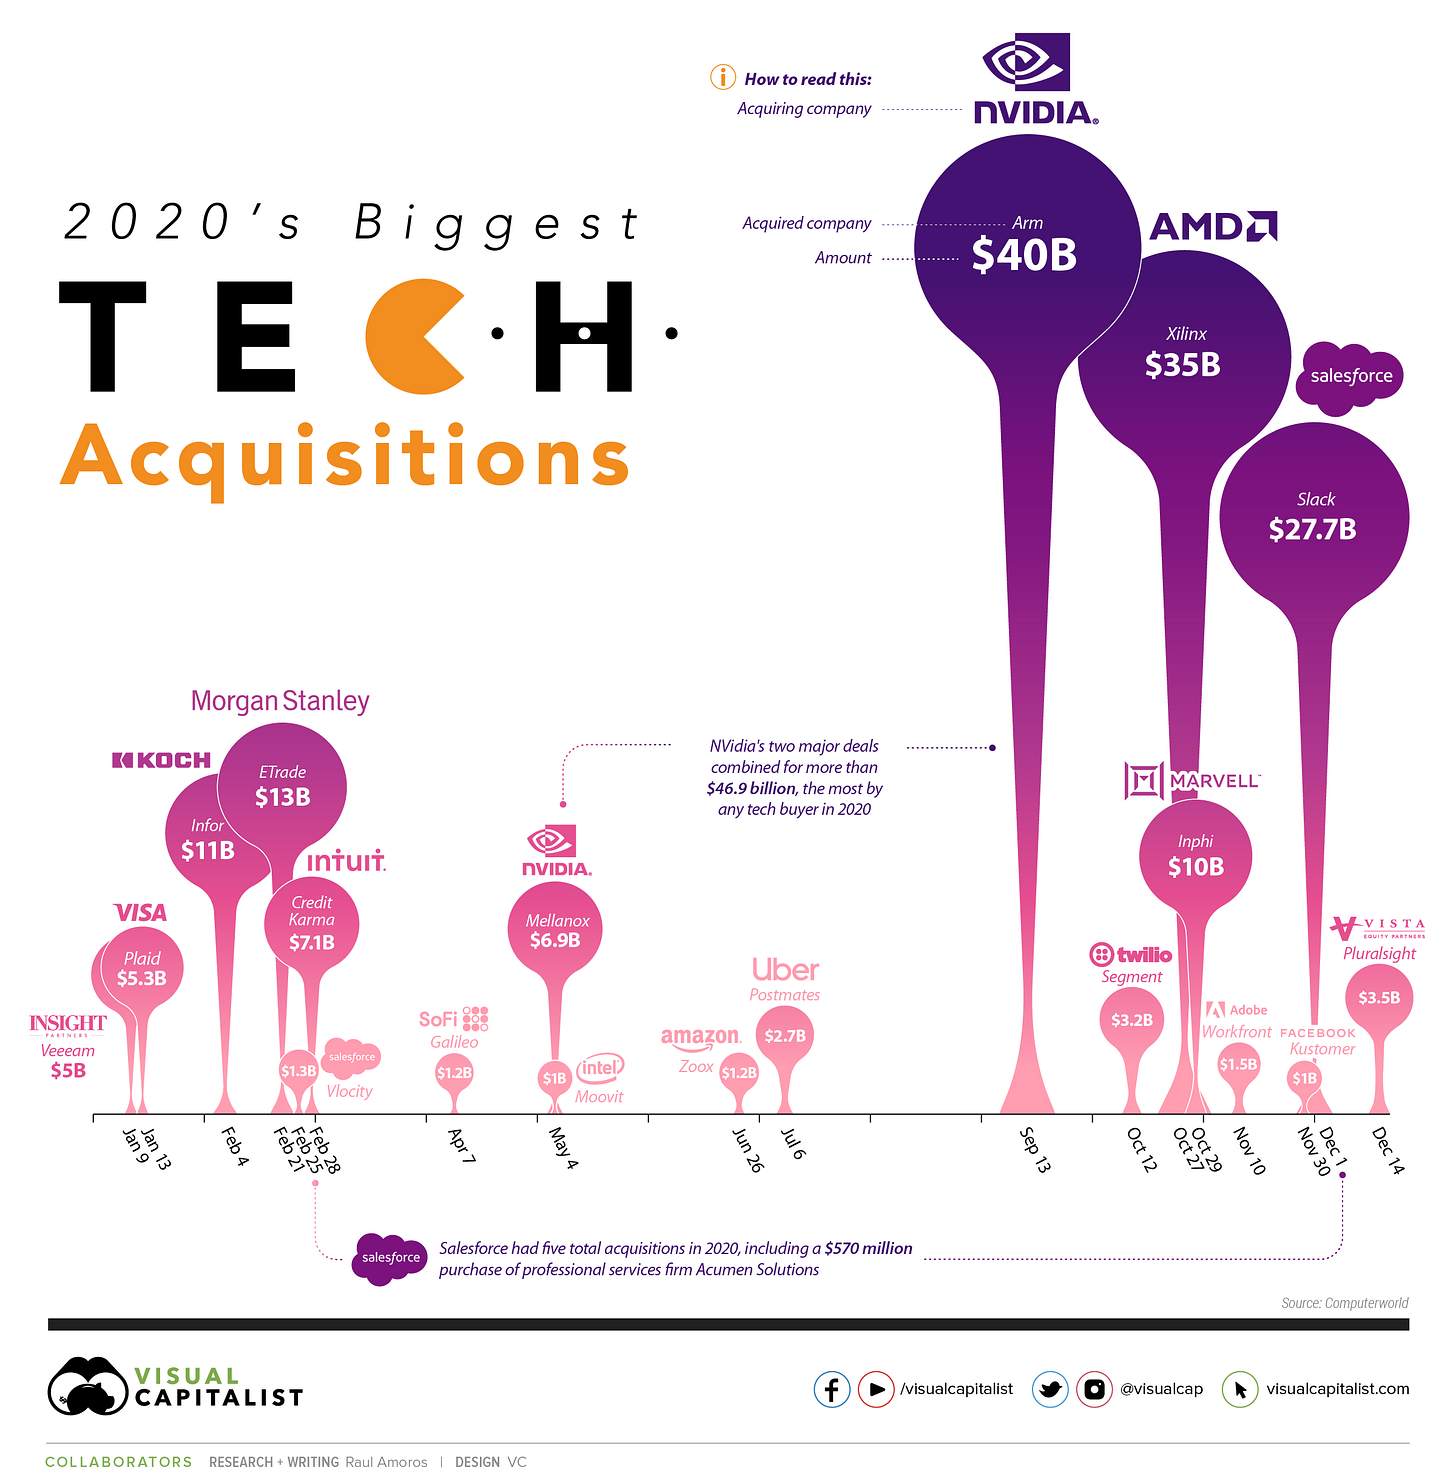 Biggest Tech Mergers and Acquisitions of 2020